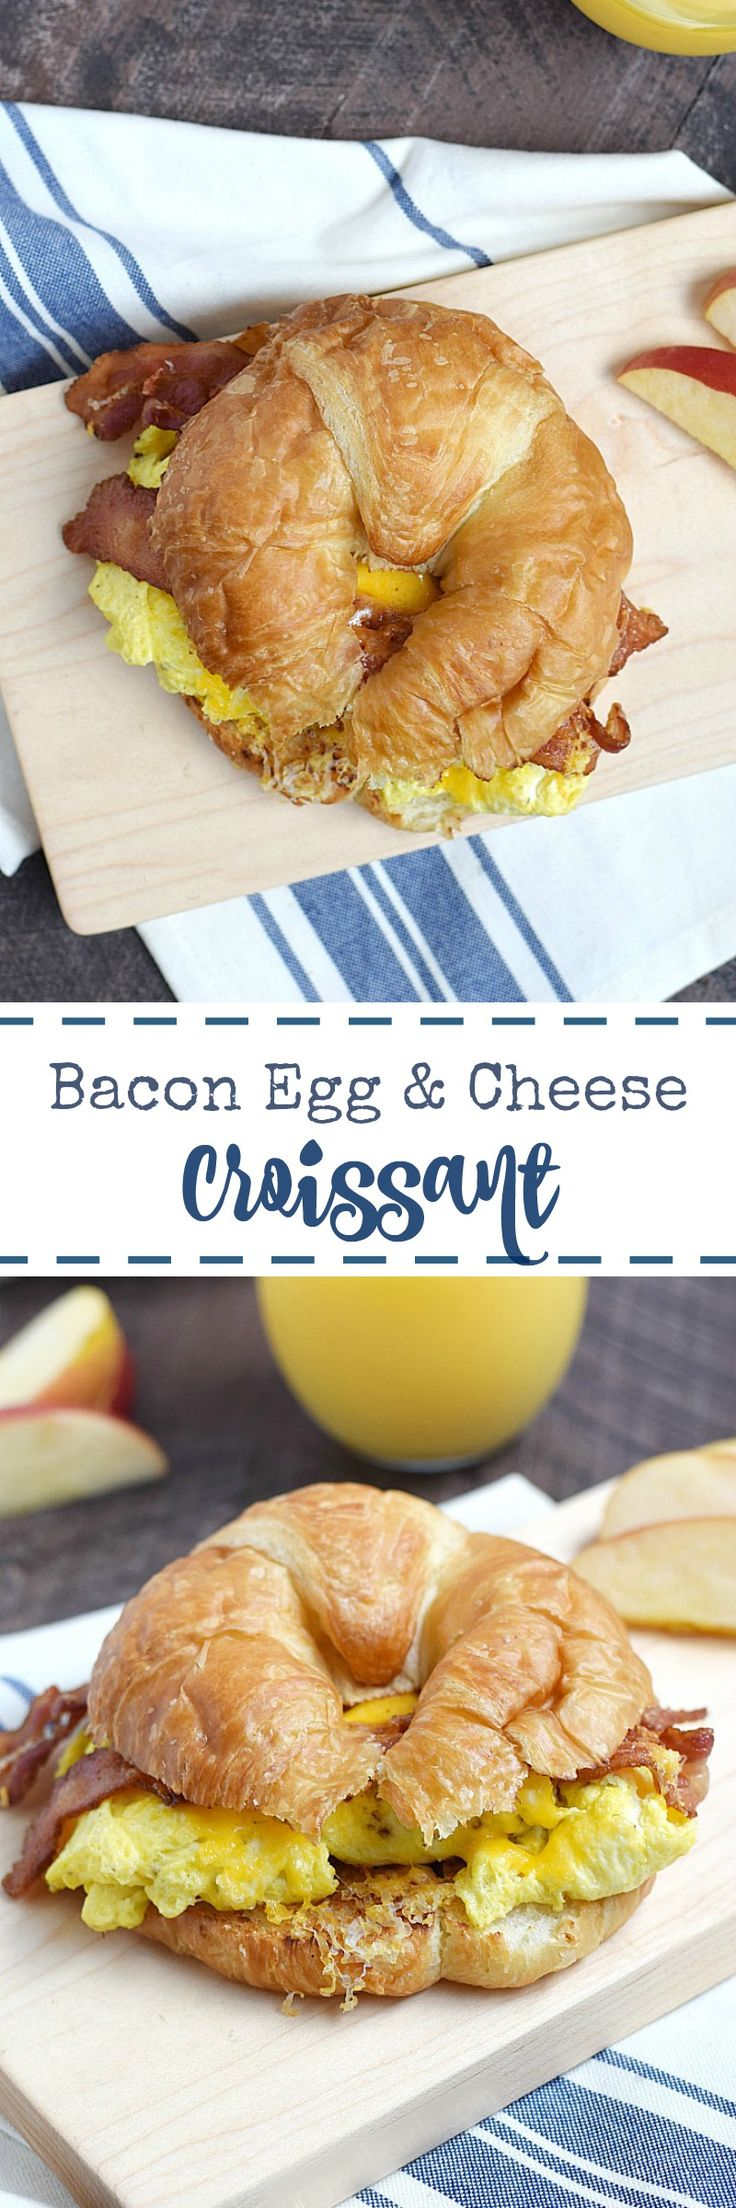 Everyone in the family will  love a Bacon Egg and Cheese Croissant for breakfast or dinner! They are simple to make at home and so delicious | cookingwithcurls.com